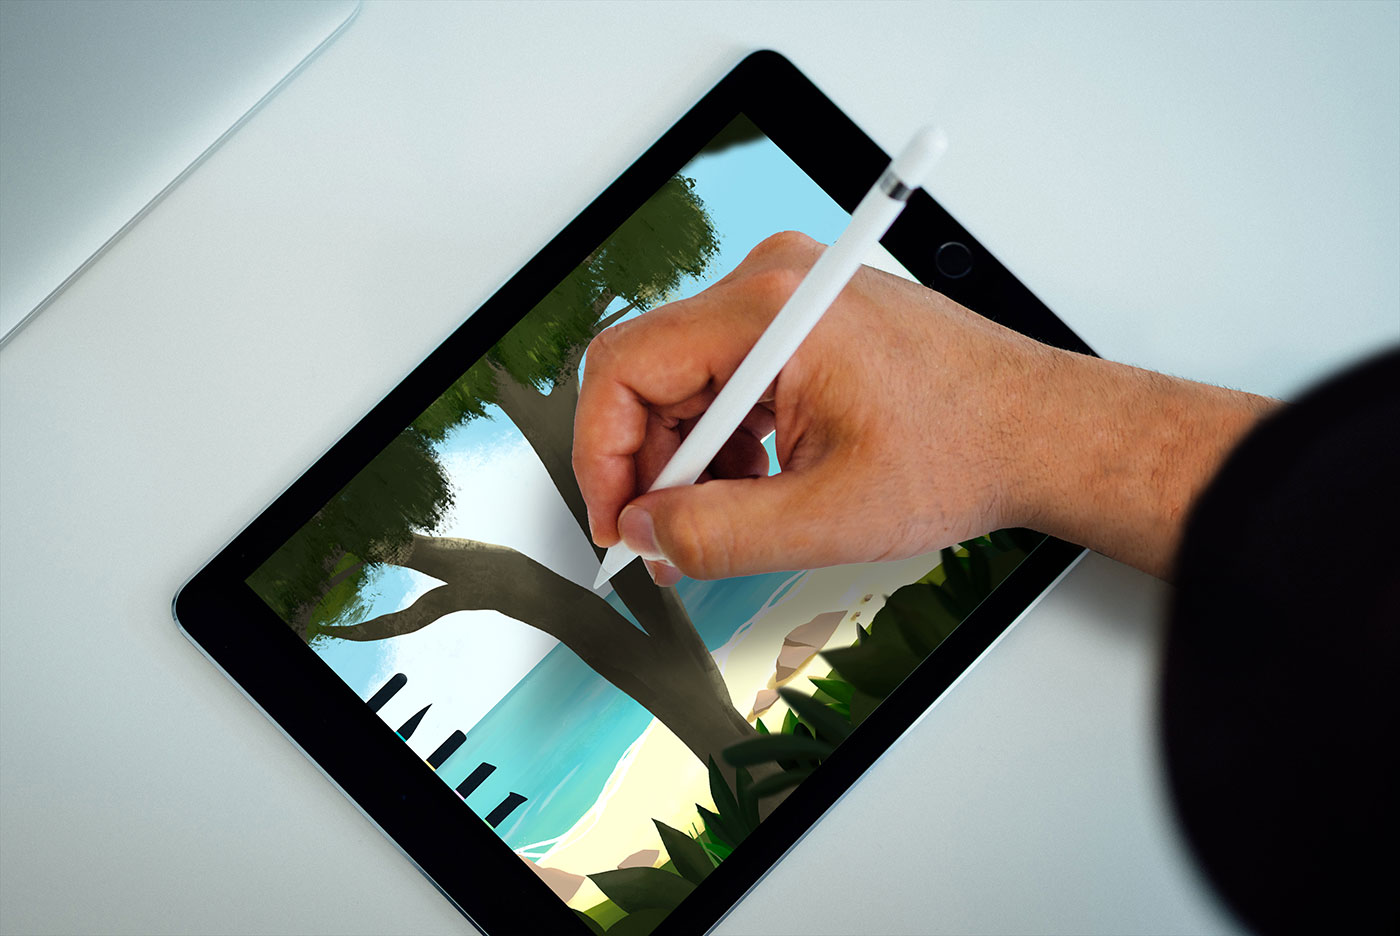 Colour photograph of hand drawing on a digital pad with a digital pen.